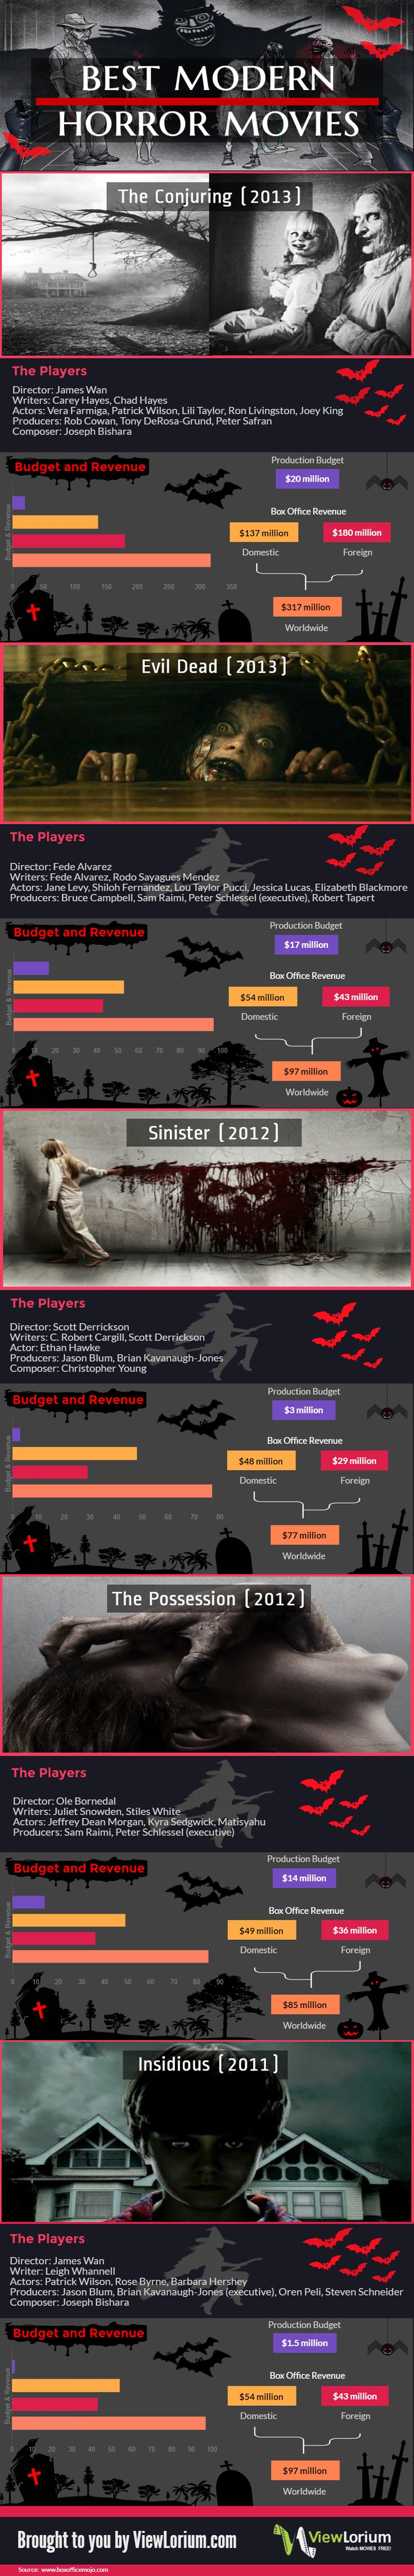 Are you looking for the #scariest #horror movies to watch tonight? We sorted through the scariest movies out there and picked the most ghoulish and jaw-dropping modern horror movies for you. Because of improved sound effects and graphics, horror movies feel more scary than they did in the past. Check out the list of top most #popular modern horror #movies, their budget and worldwide revenue in this #infographic.